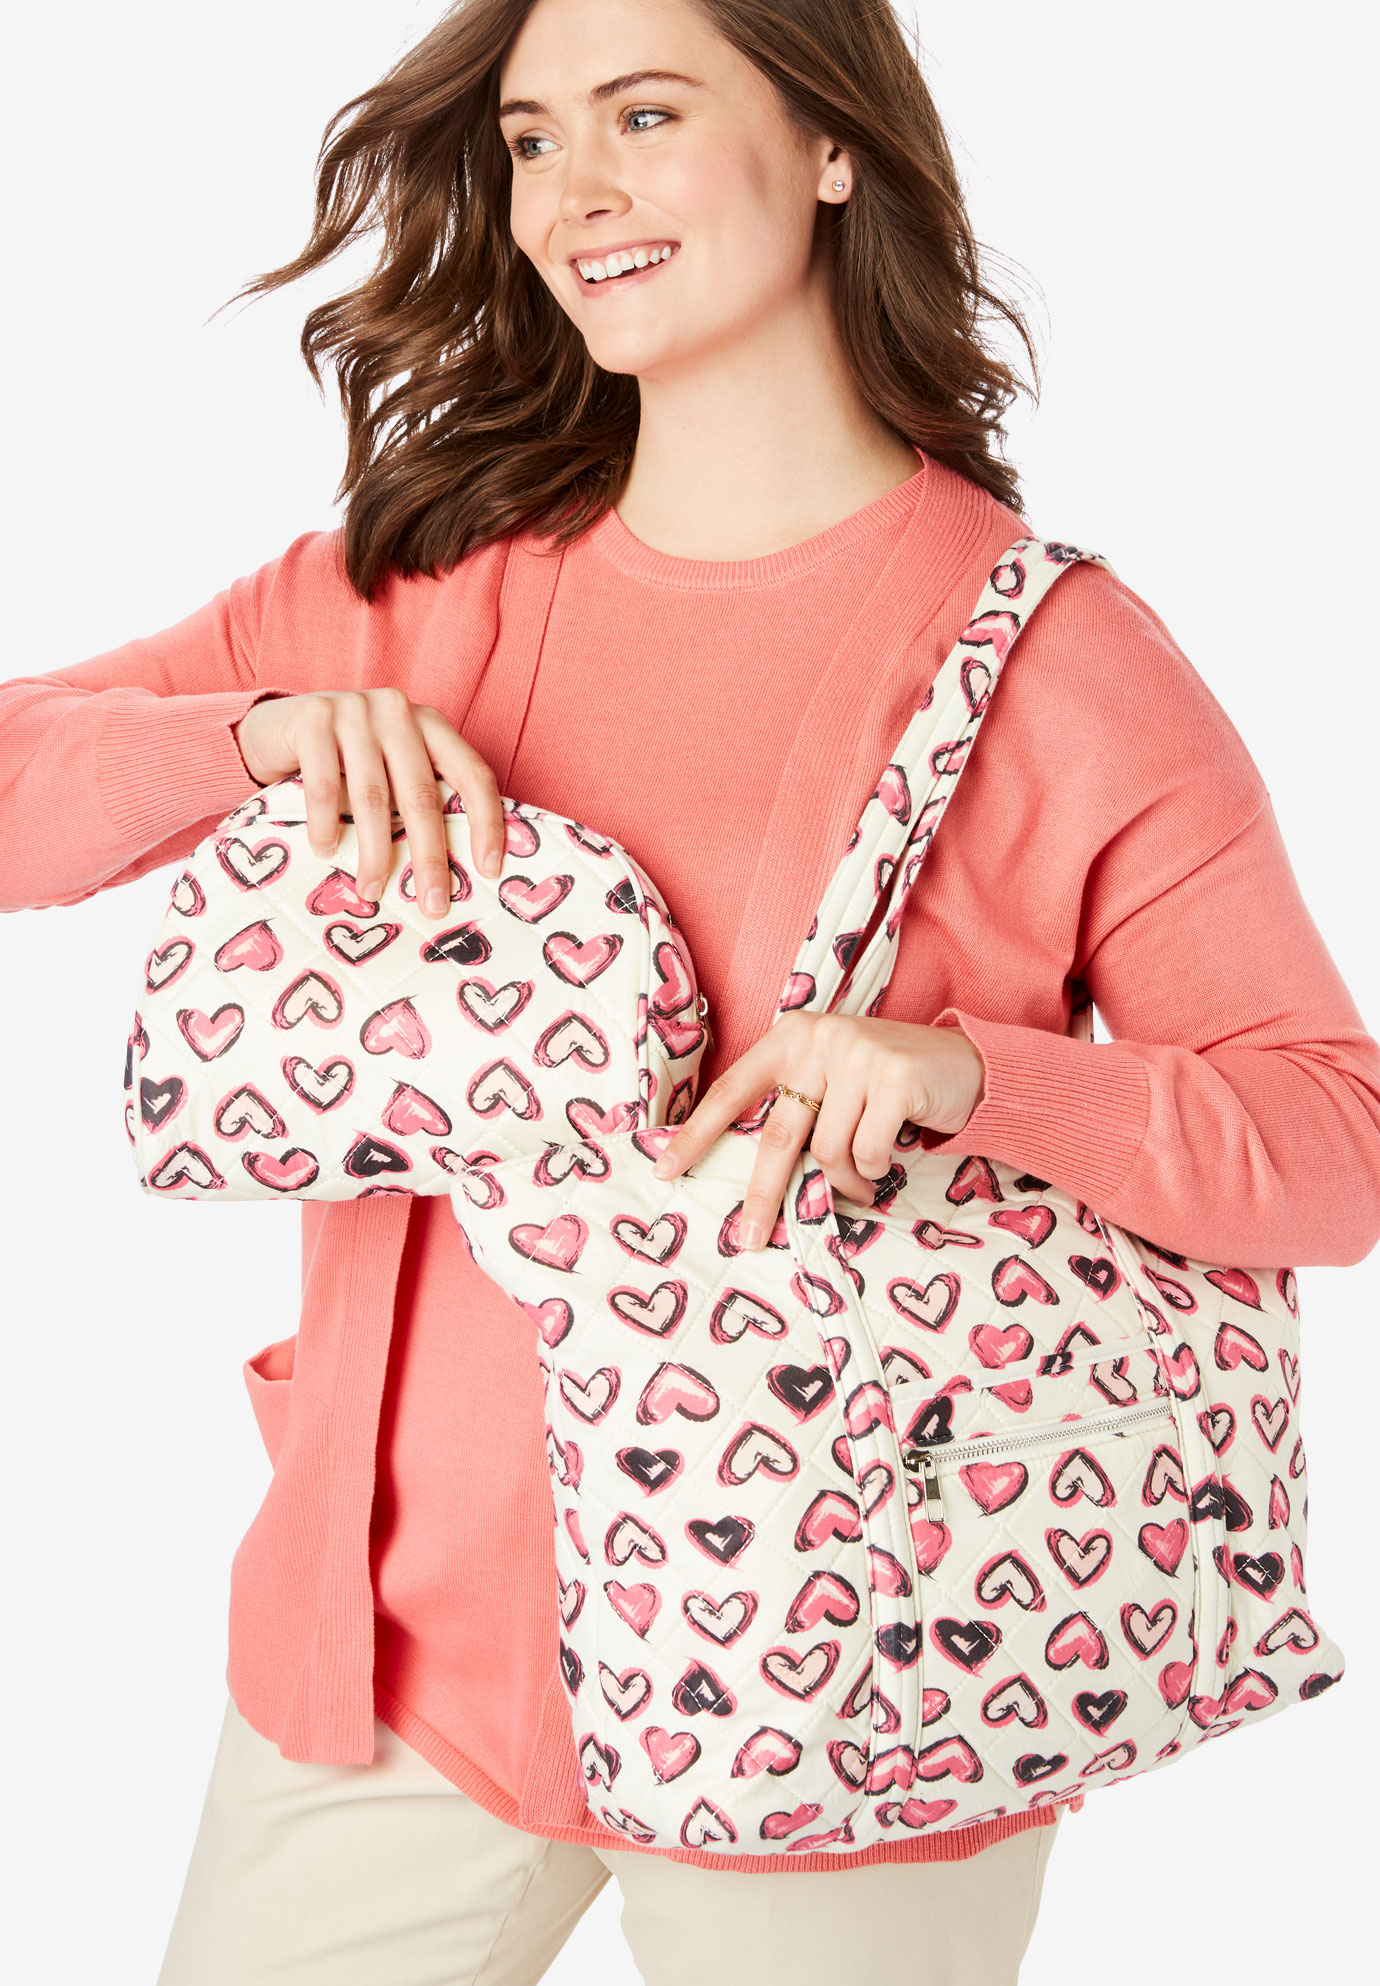 Heart Print Tote and Cosmetic Pouch, TEA ROSE PAINTED HEART